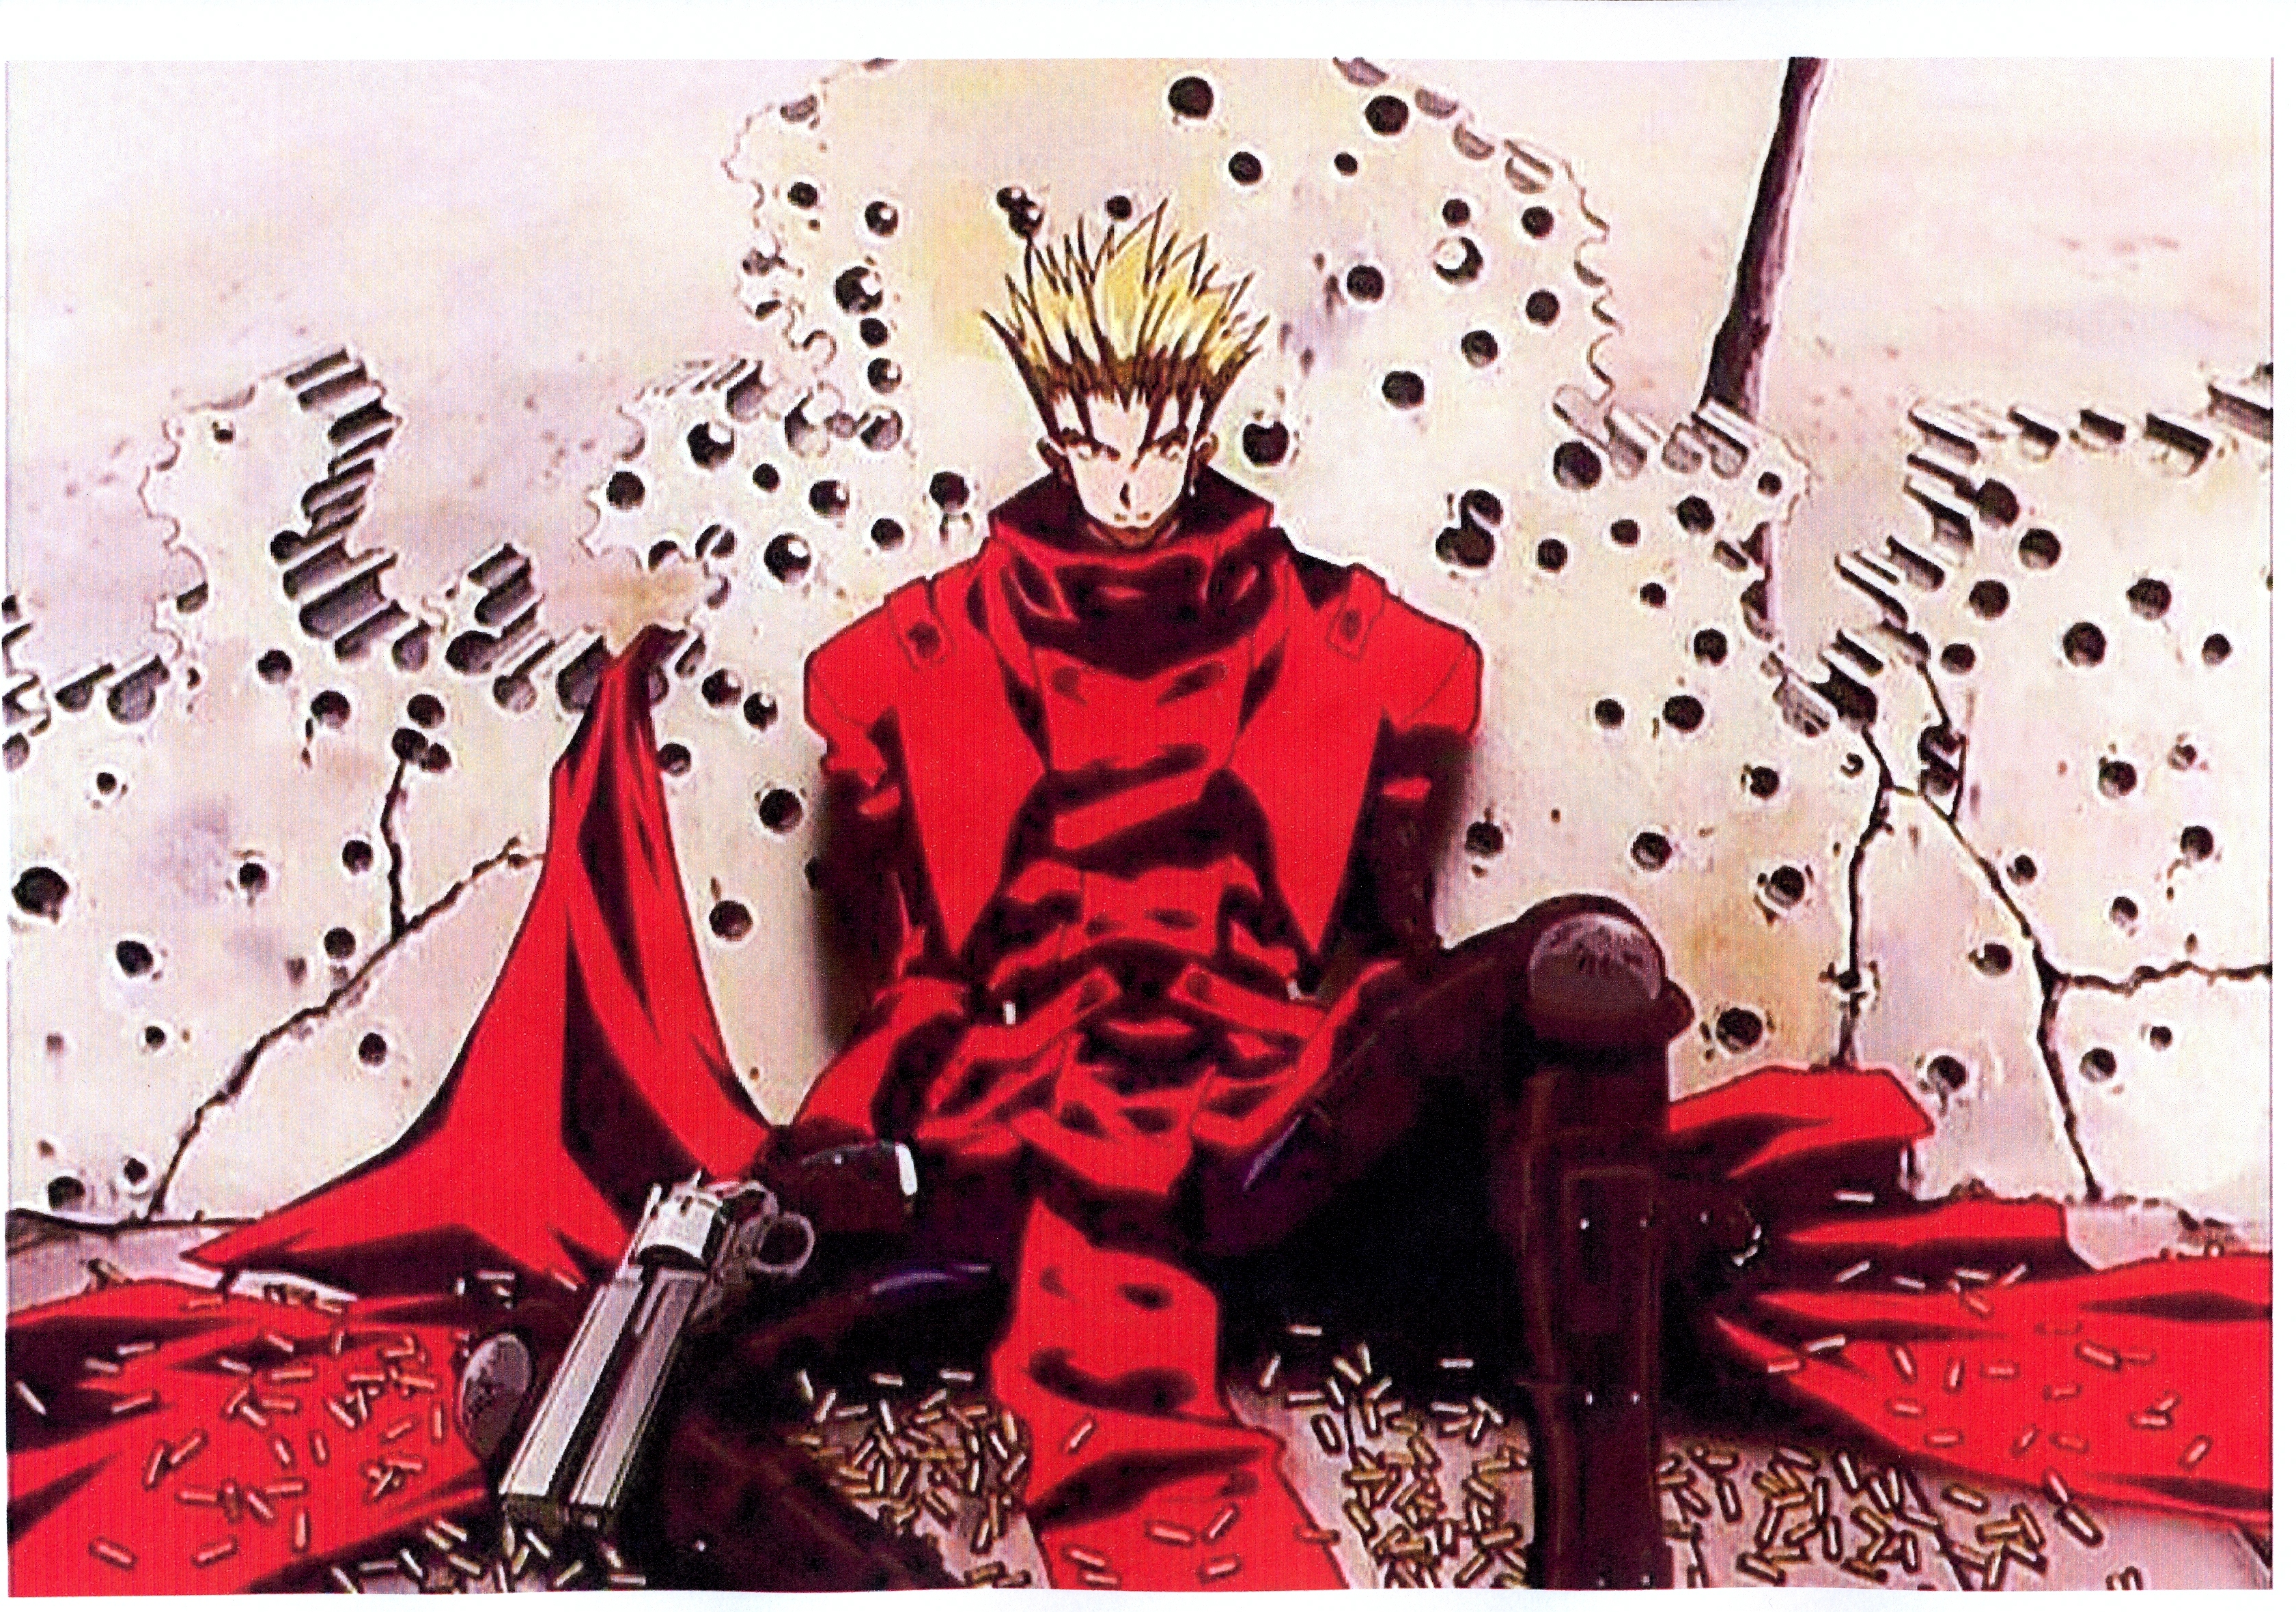 zerochantrigun